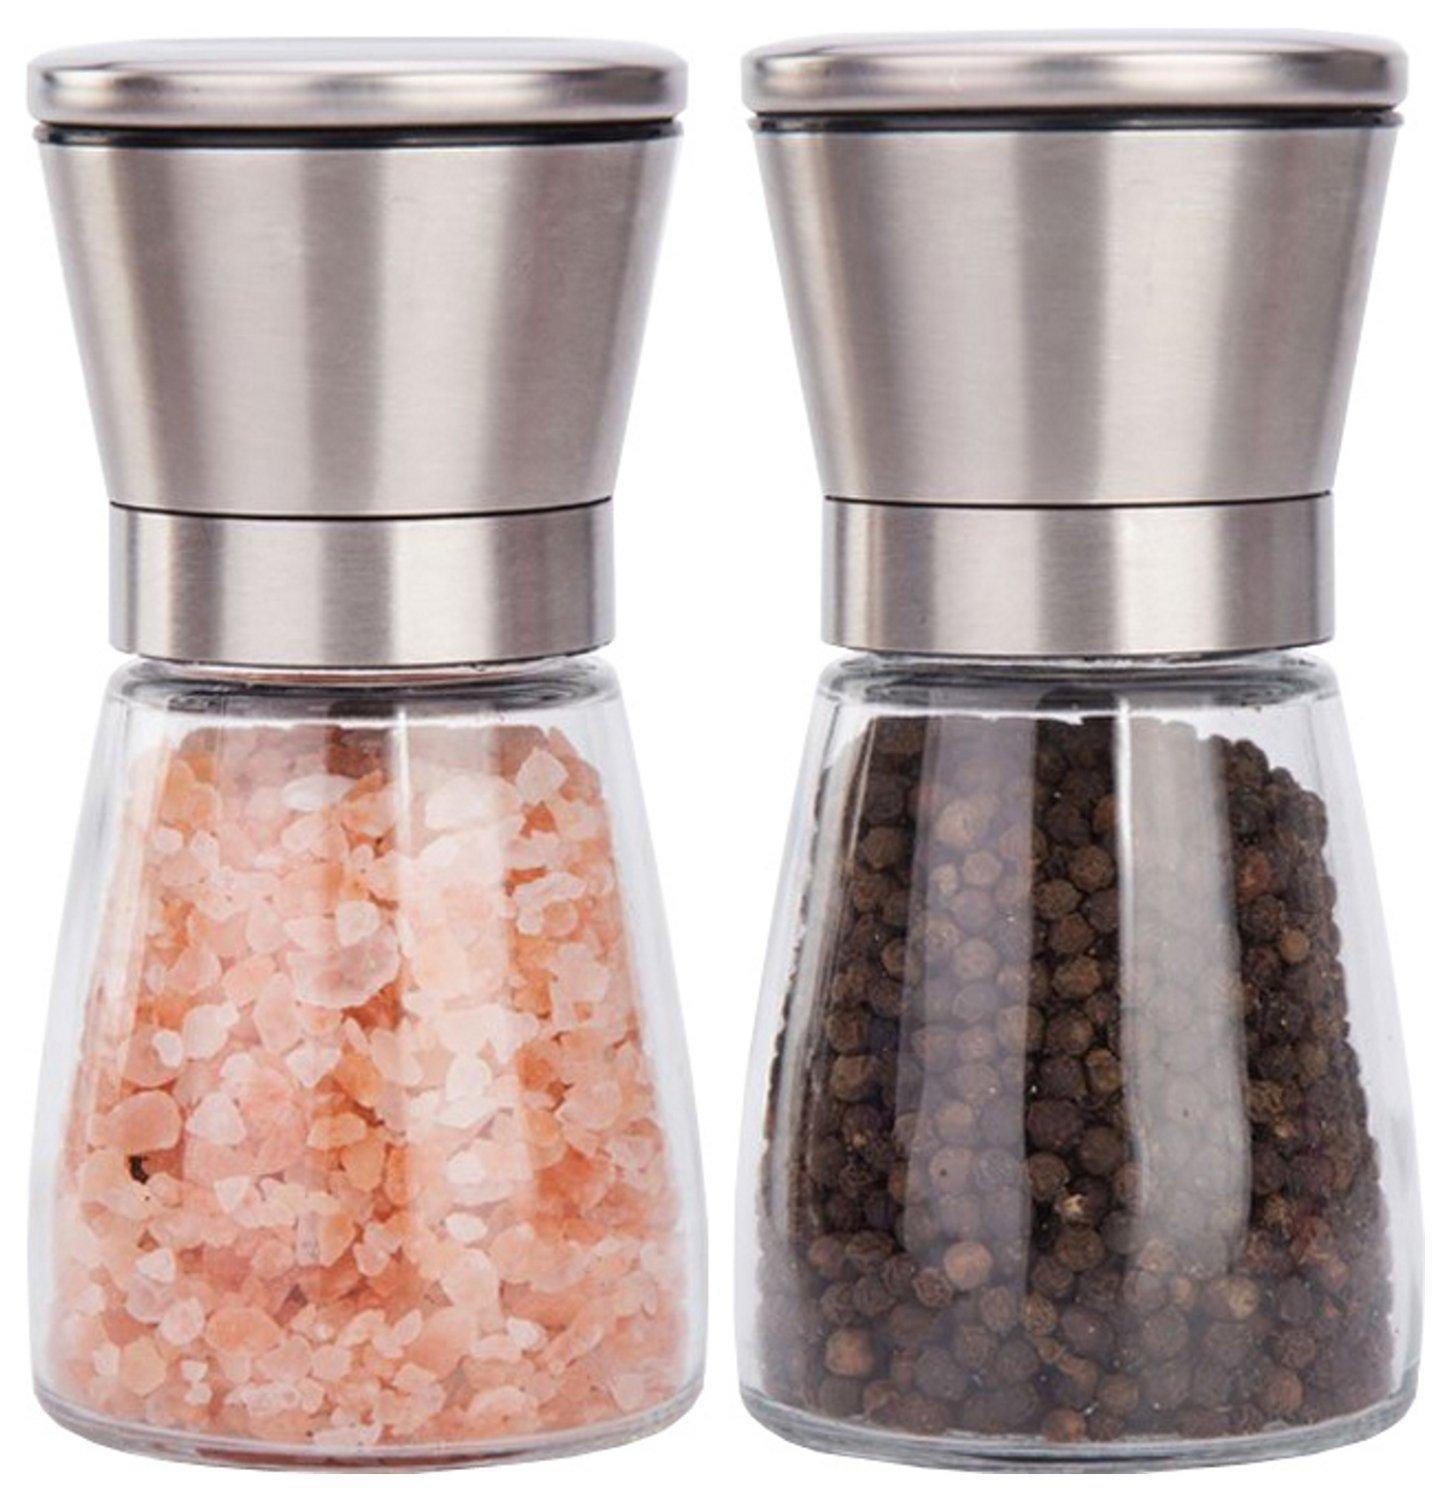 2019 Salt And Pepper Grinder Set Best Salt Pepper Shaker Grinder Red